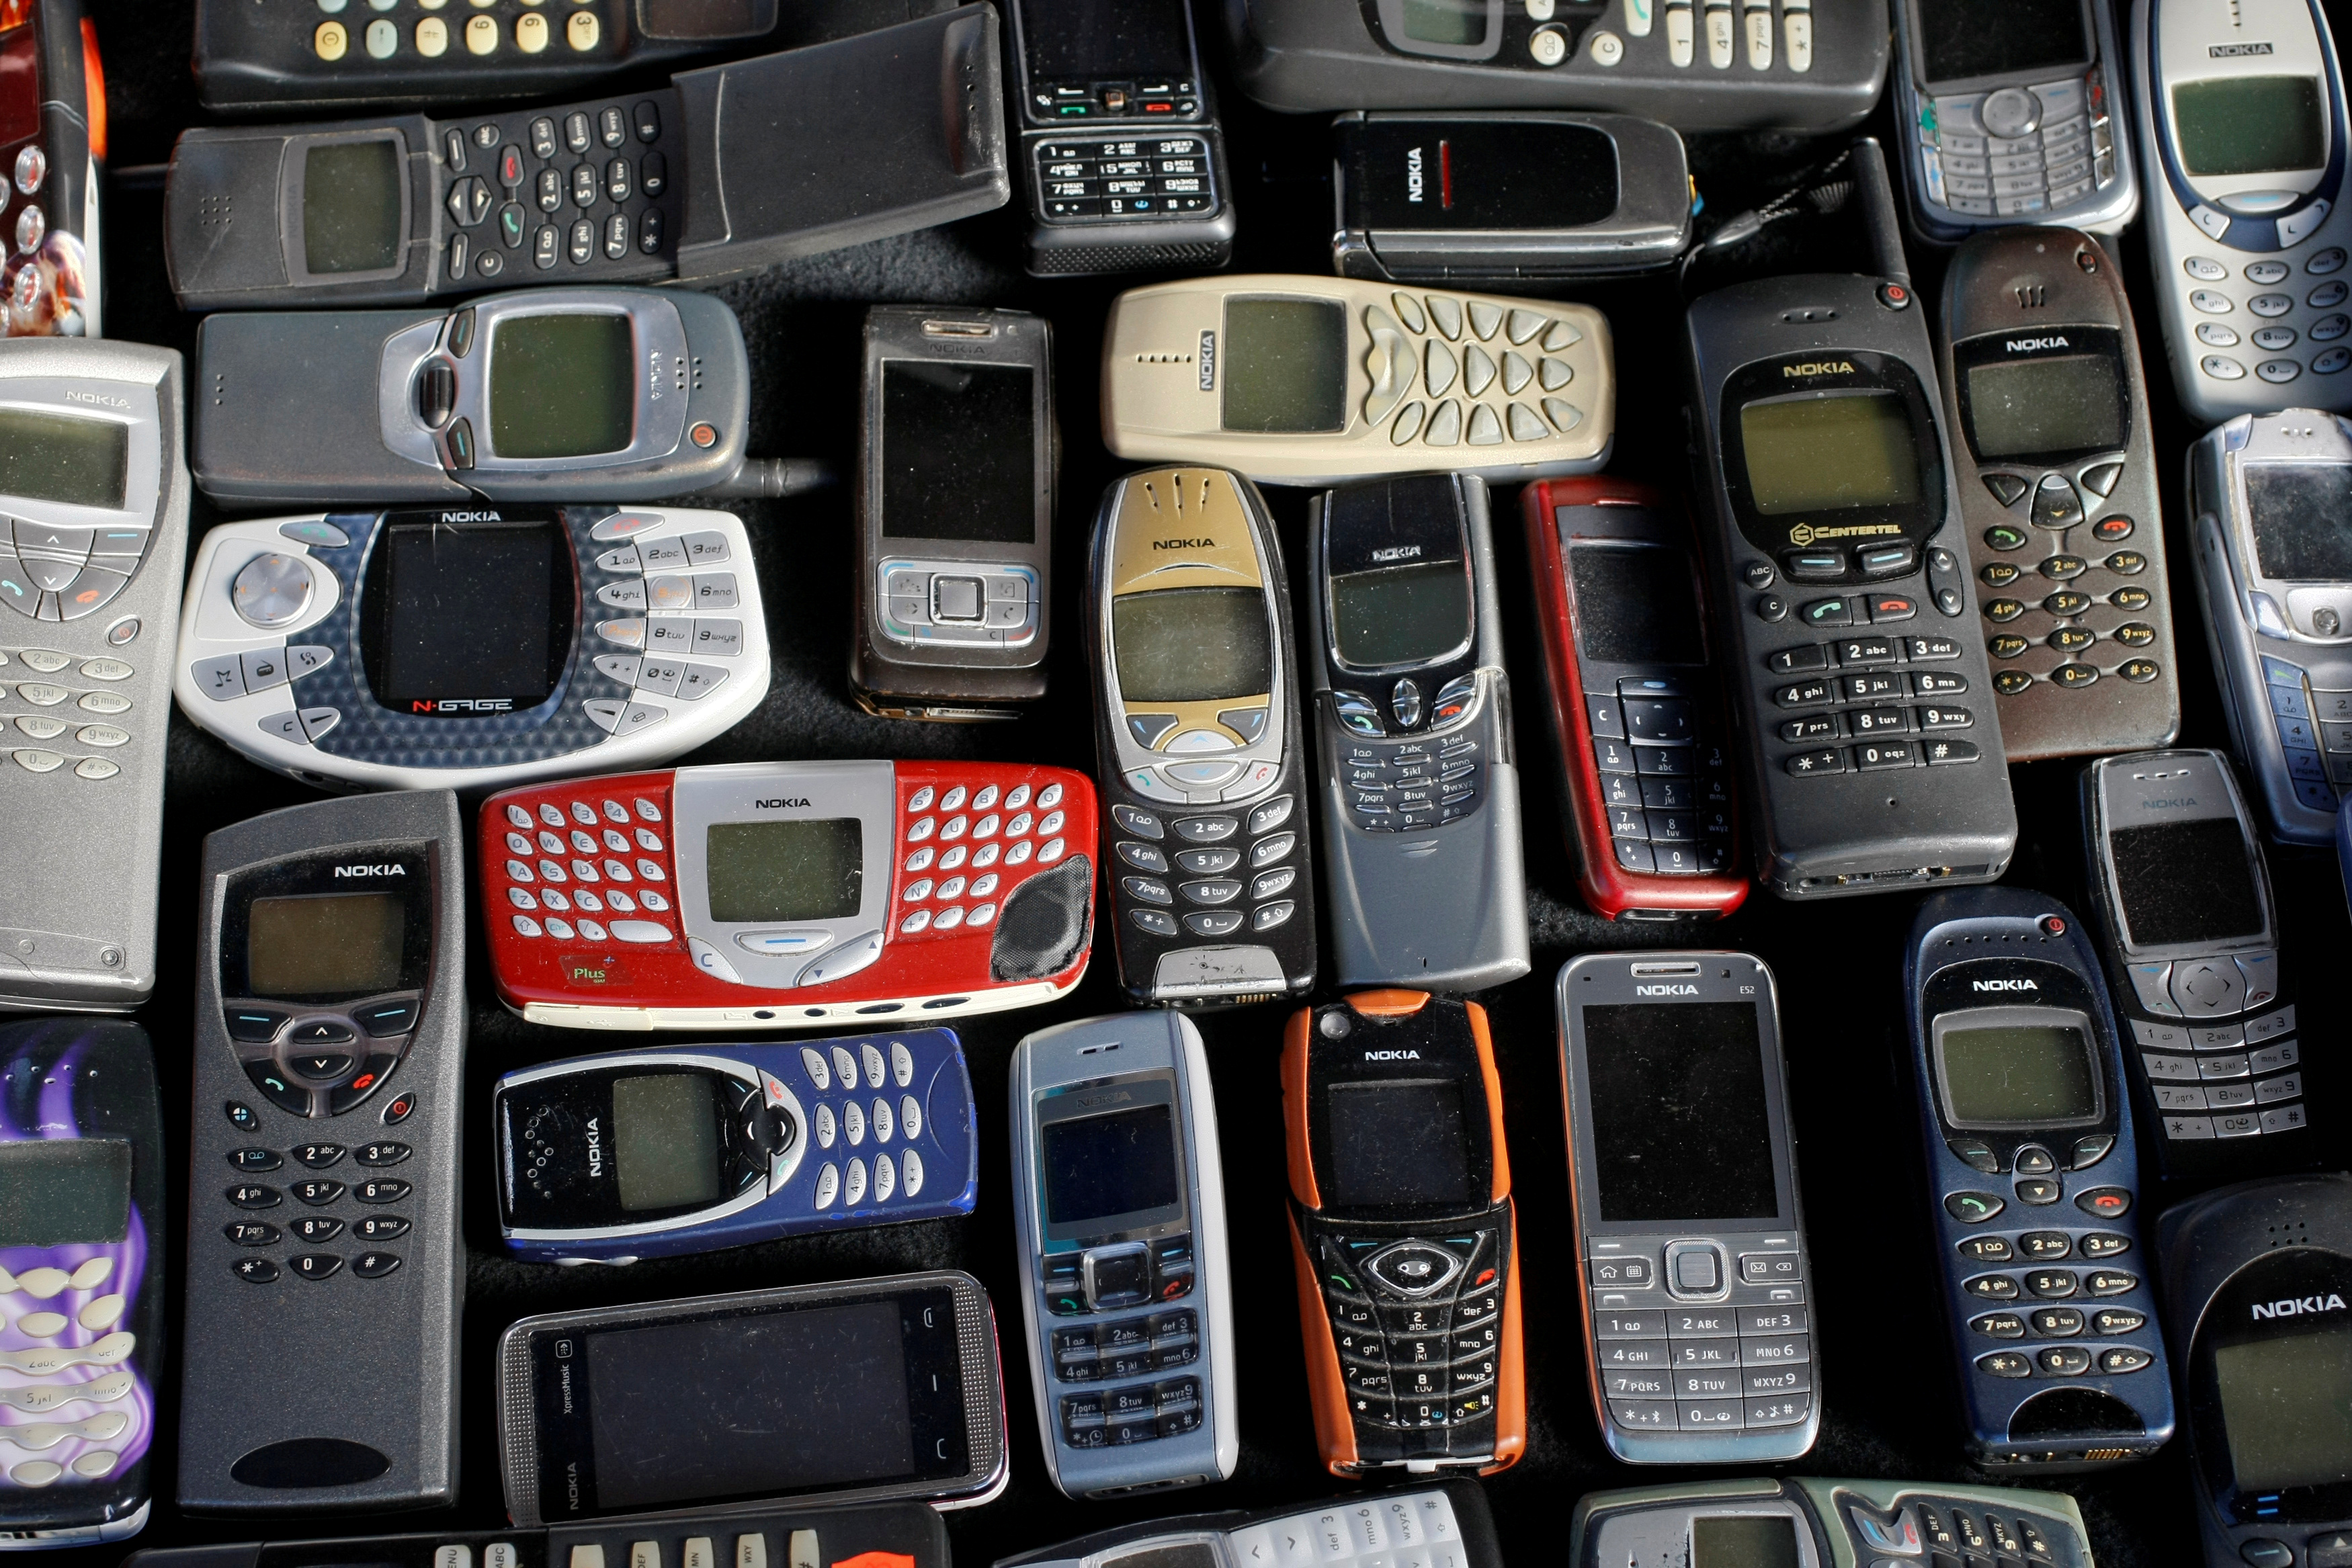 Photo illustration of a collection of mobile phones made by Nokia